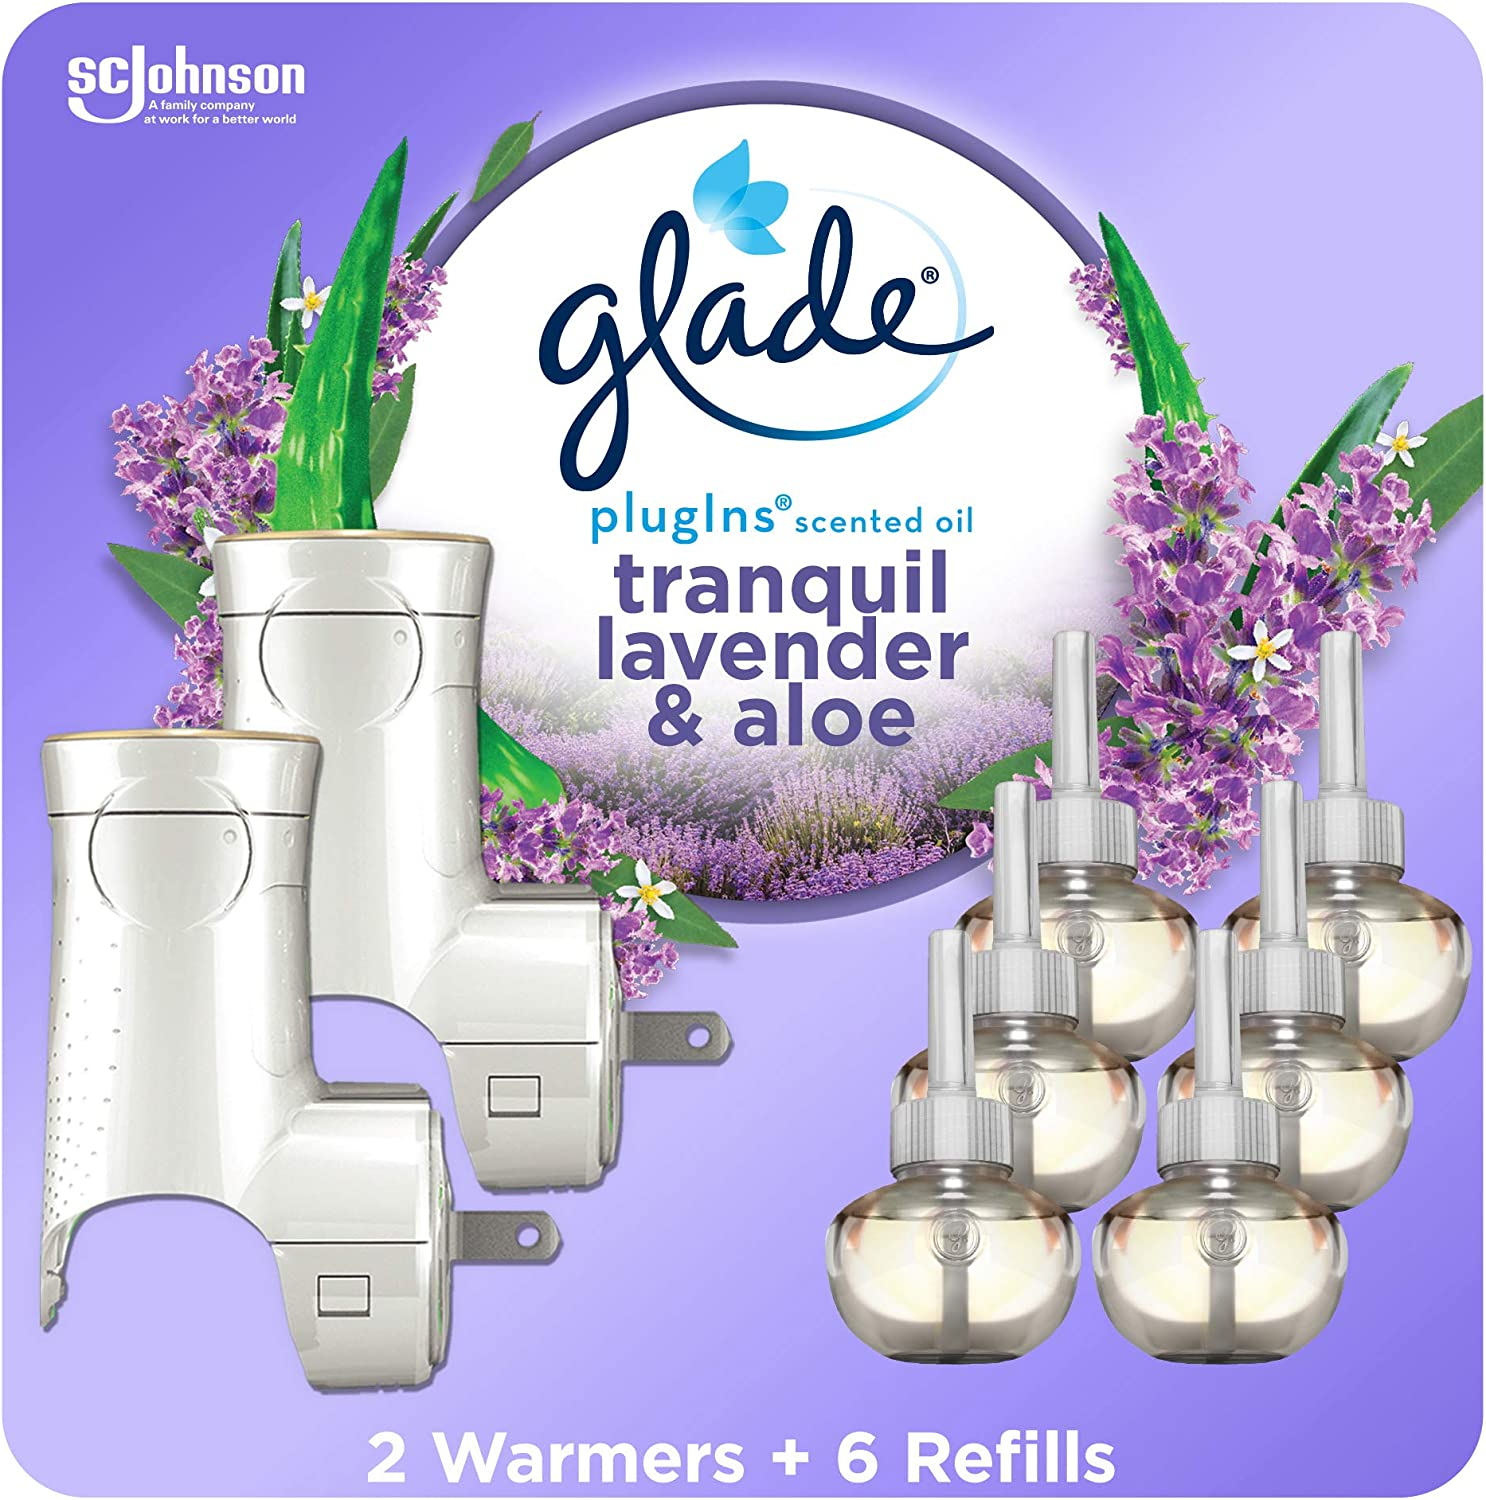 Glade PlugIns Refills Air Freshener Starter Kit, Scented and Essential Oils for Home and Bathroom, Tranquil Lavender & Aloe, 4.02 Fl Oz, 2 Warmers + 6 Refills